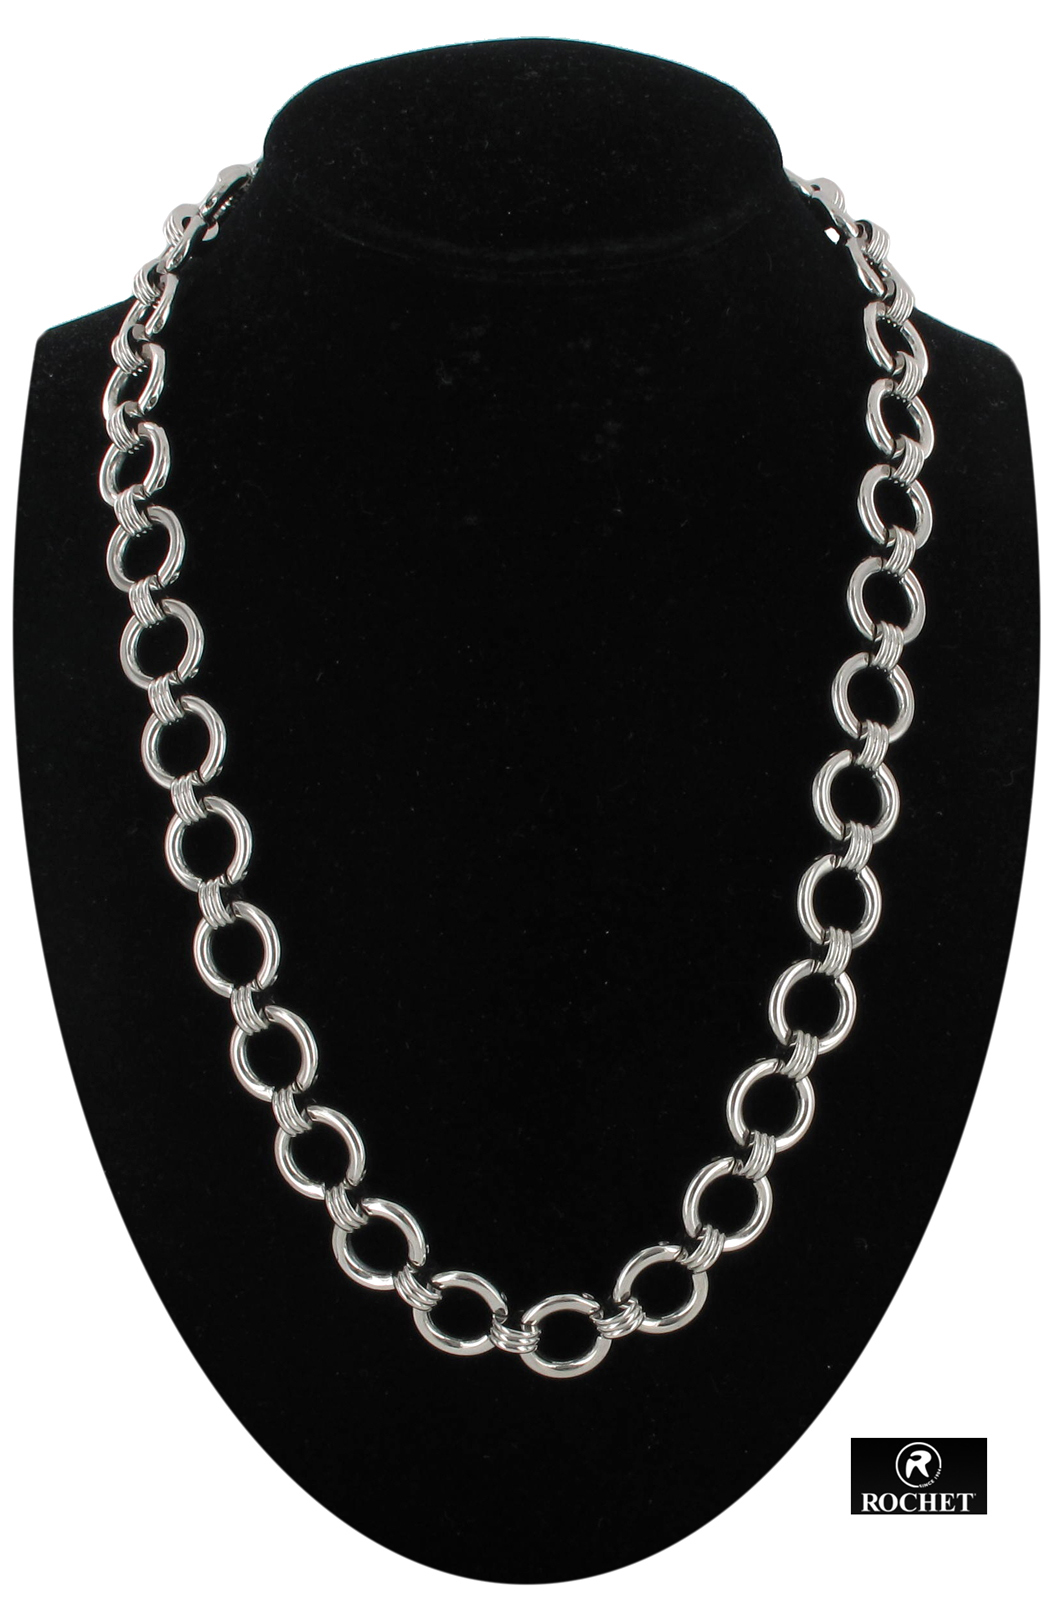 diana chain heavy mens hand sterling necklace s men woven products in ferguson il oxidized jewelry custom link silver fullxfull